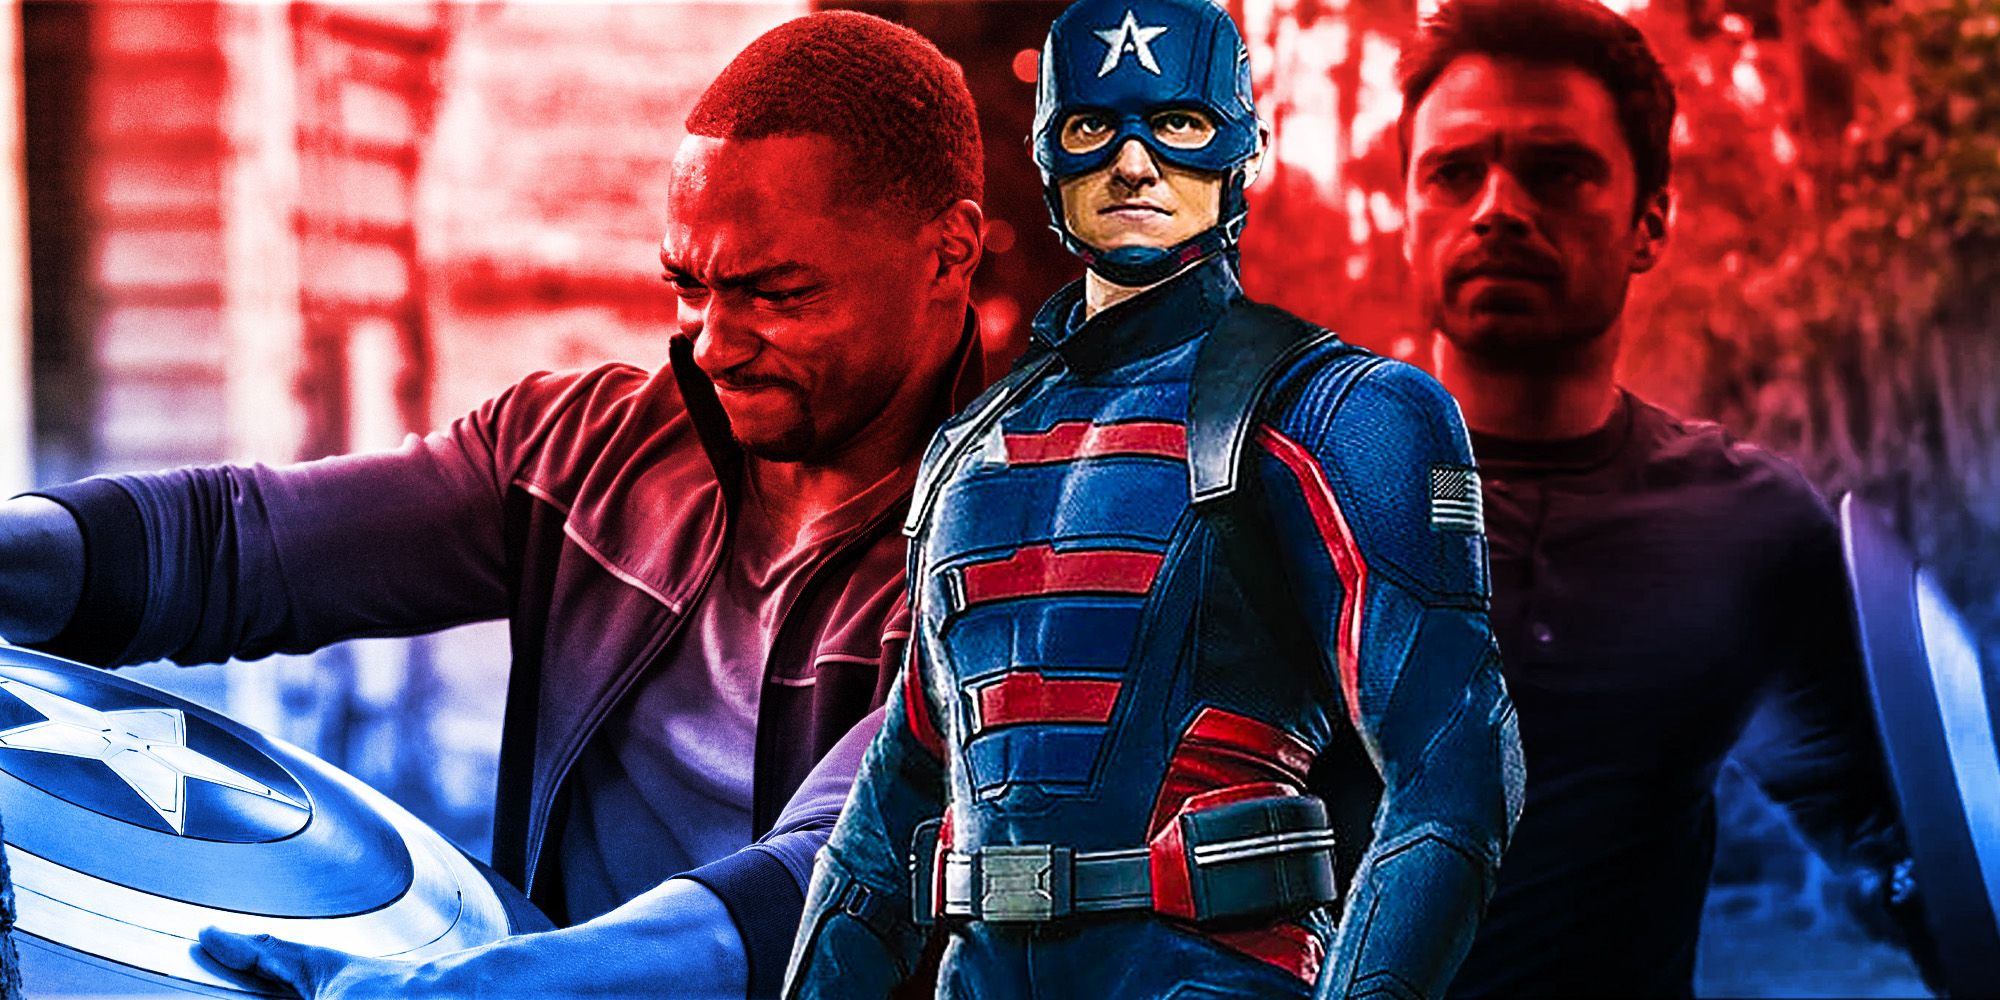 Falcon & Winter Soldier: Bucky & Sam's Disapproval Crushes John Walker